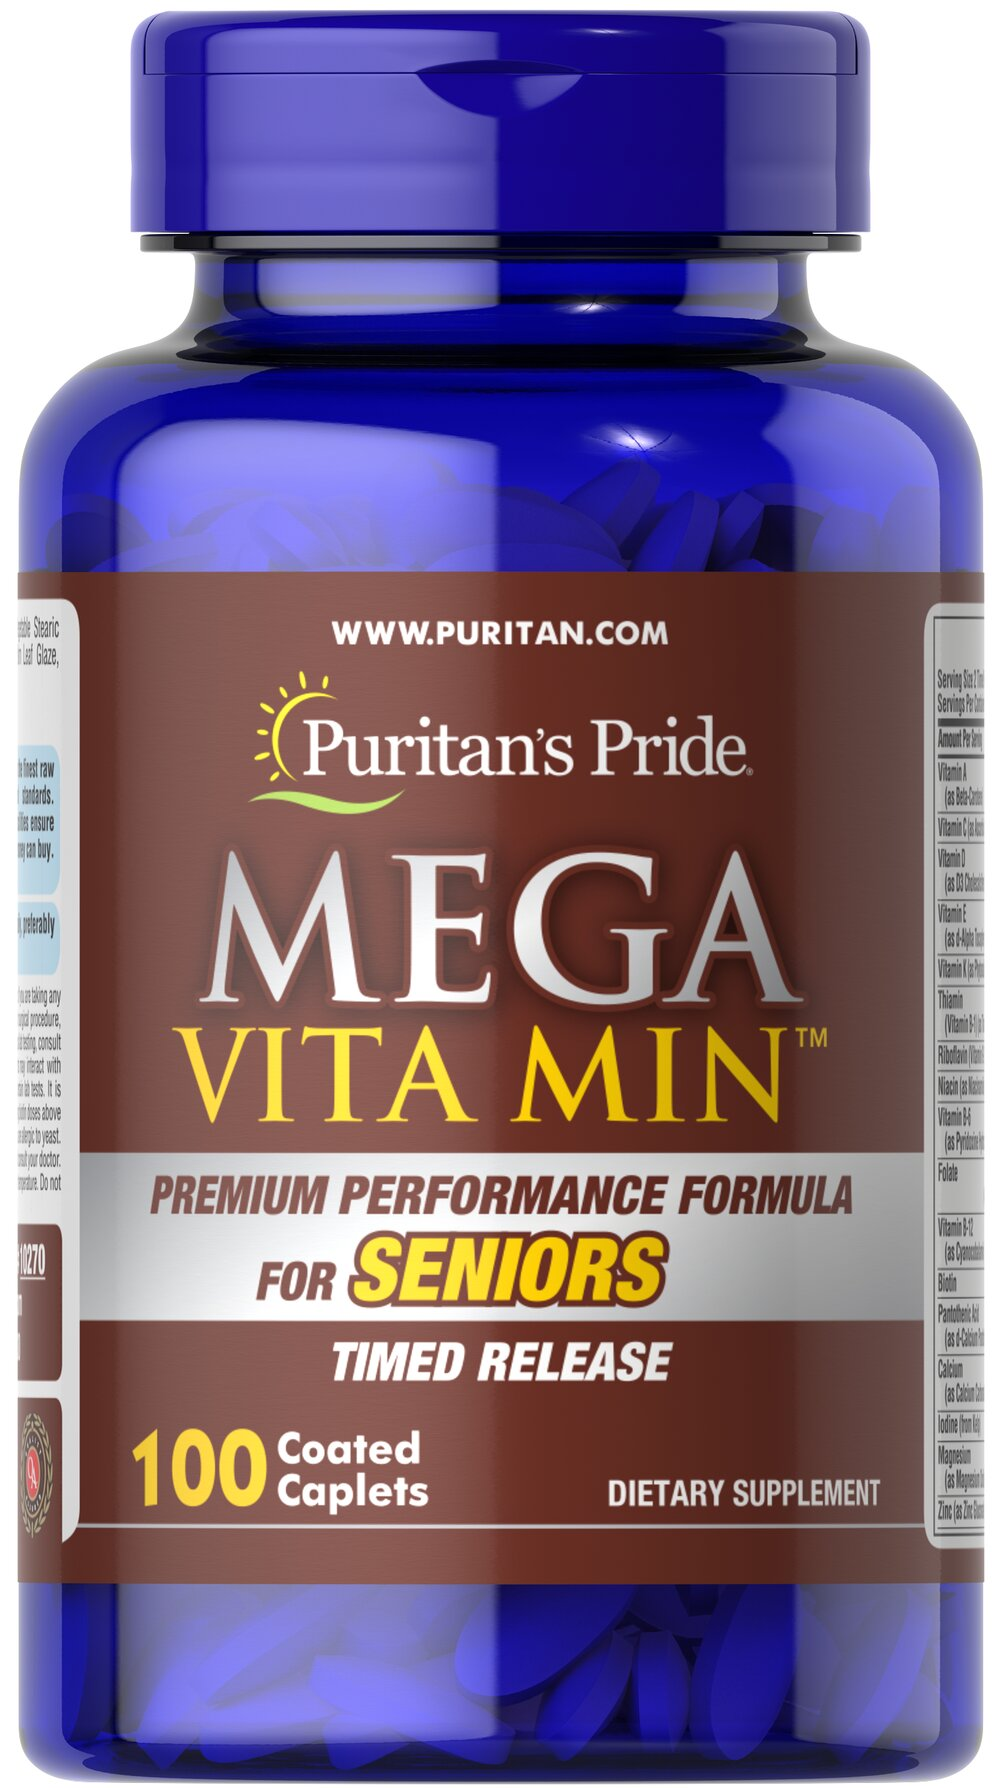 Mega Vita Min™ Multivitamin for Seniors Timed Release  100 Coated Caplets